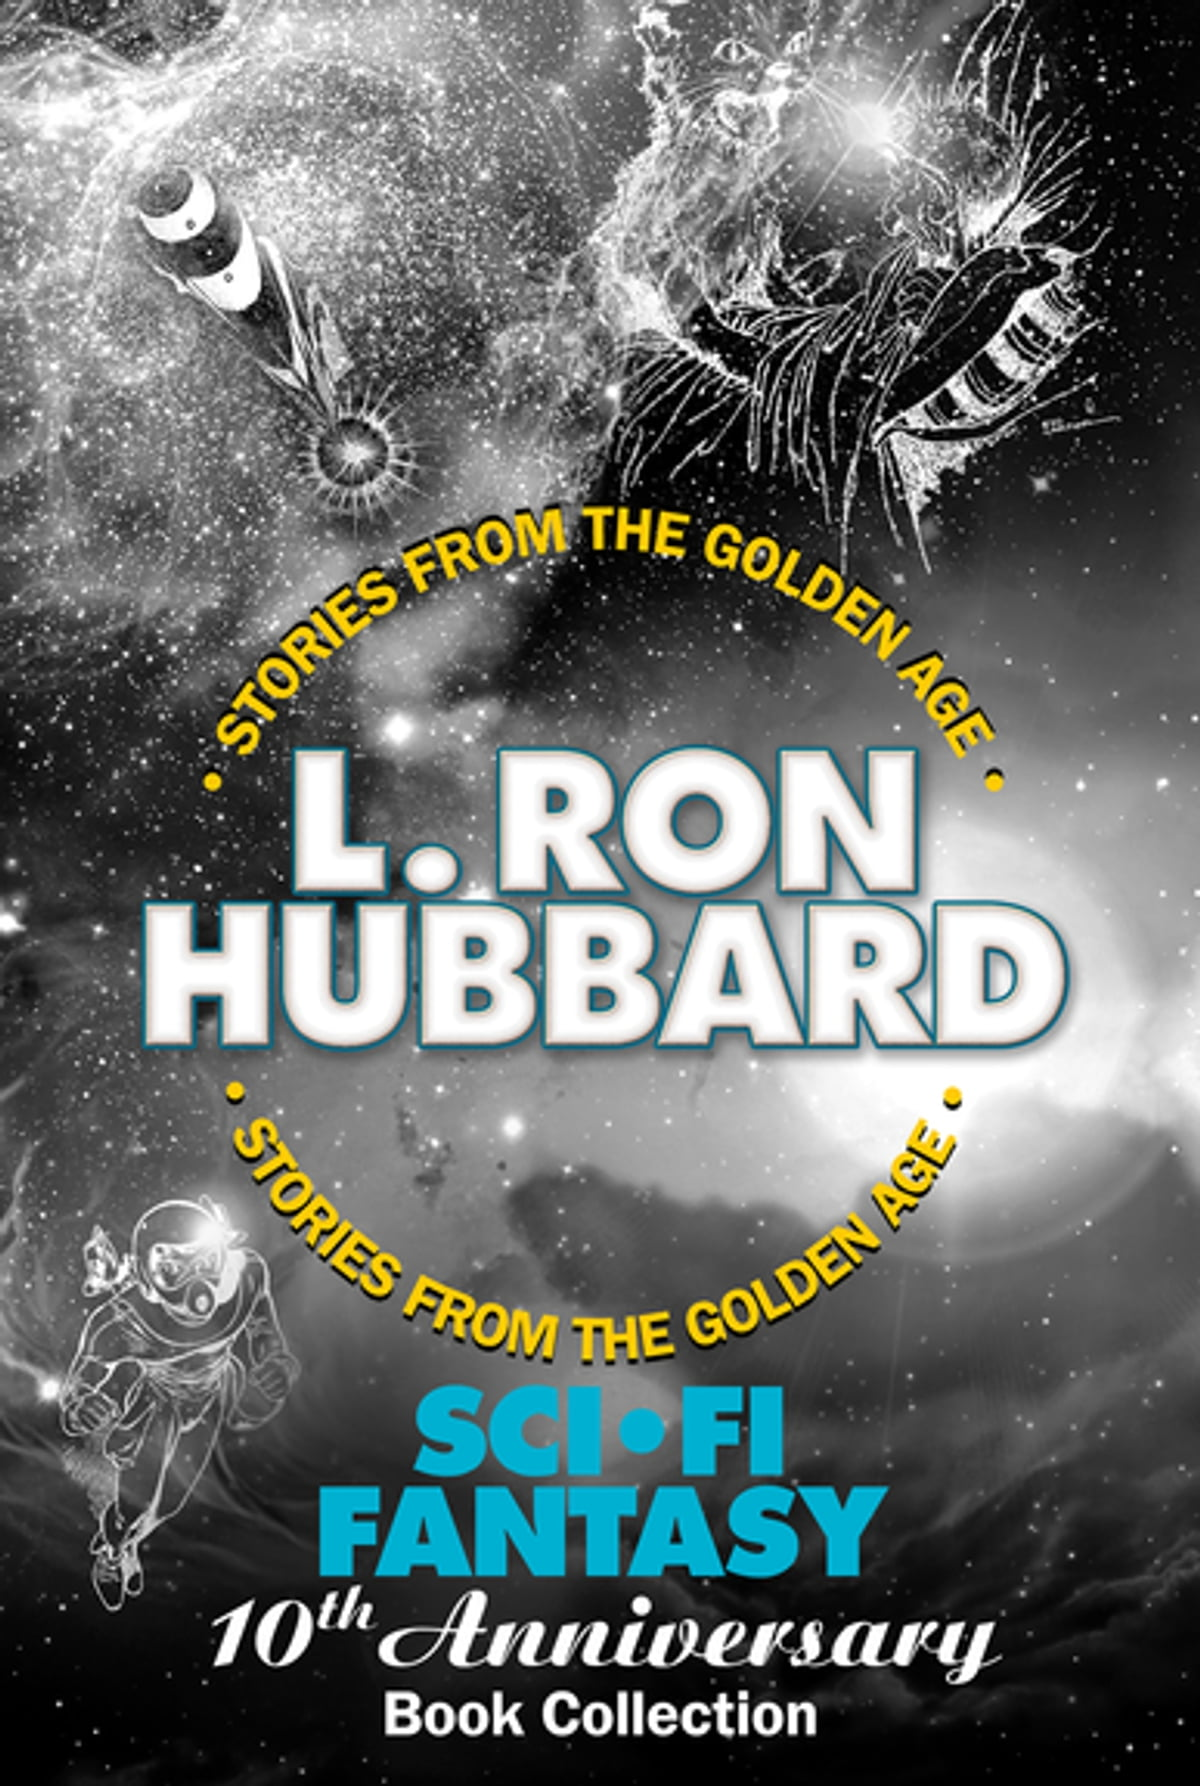 Sci-Fi / Fantasy 10th Anniversary Book Collection (One Was Stubborn, The  Tramp, If I Were You and The Great Secret) eBook de L. Ron Hubbard -  9781619866218 ...